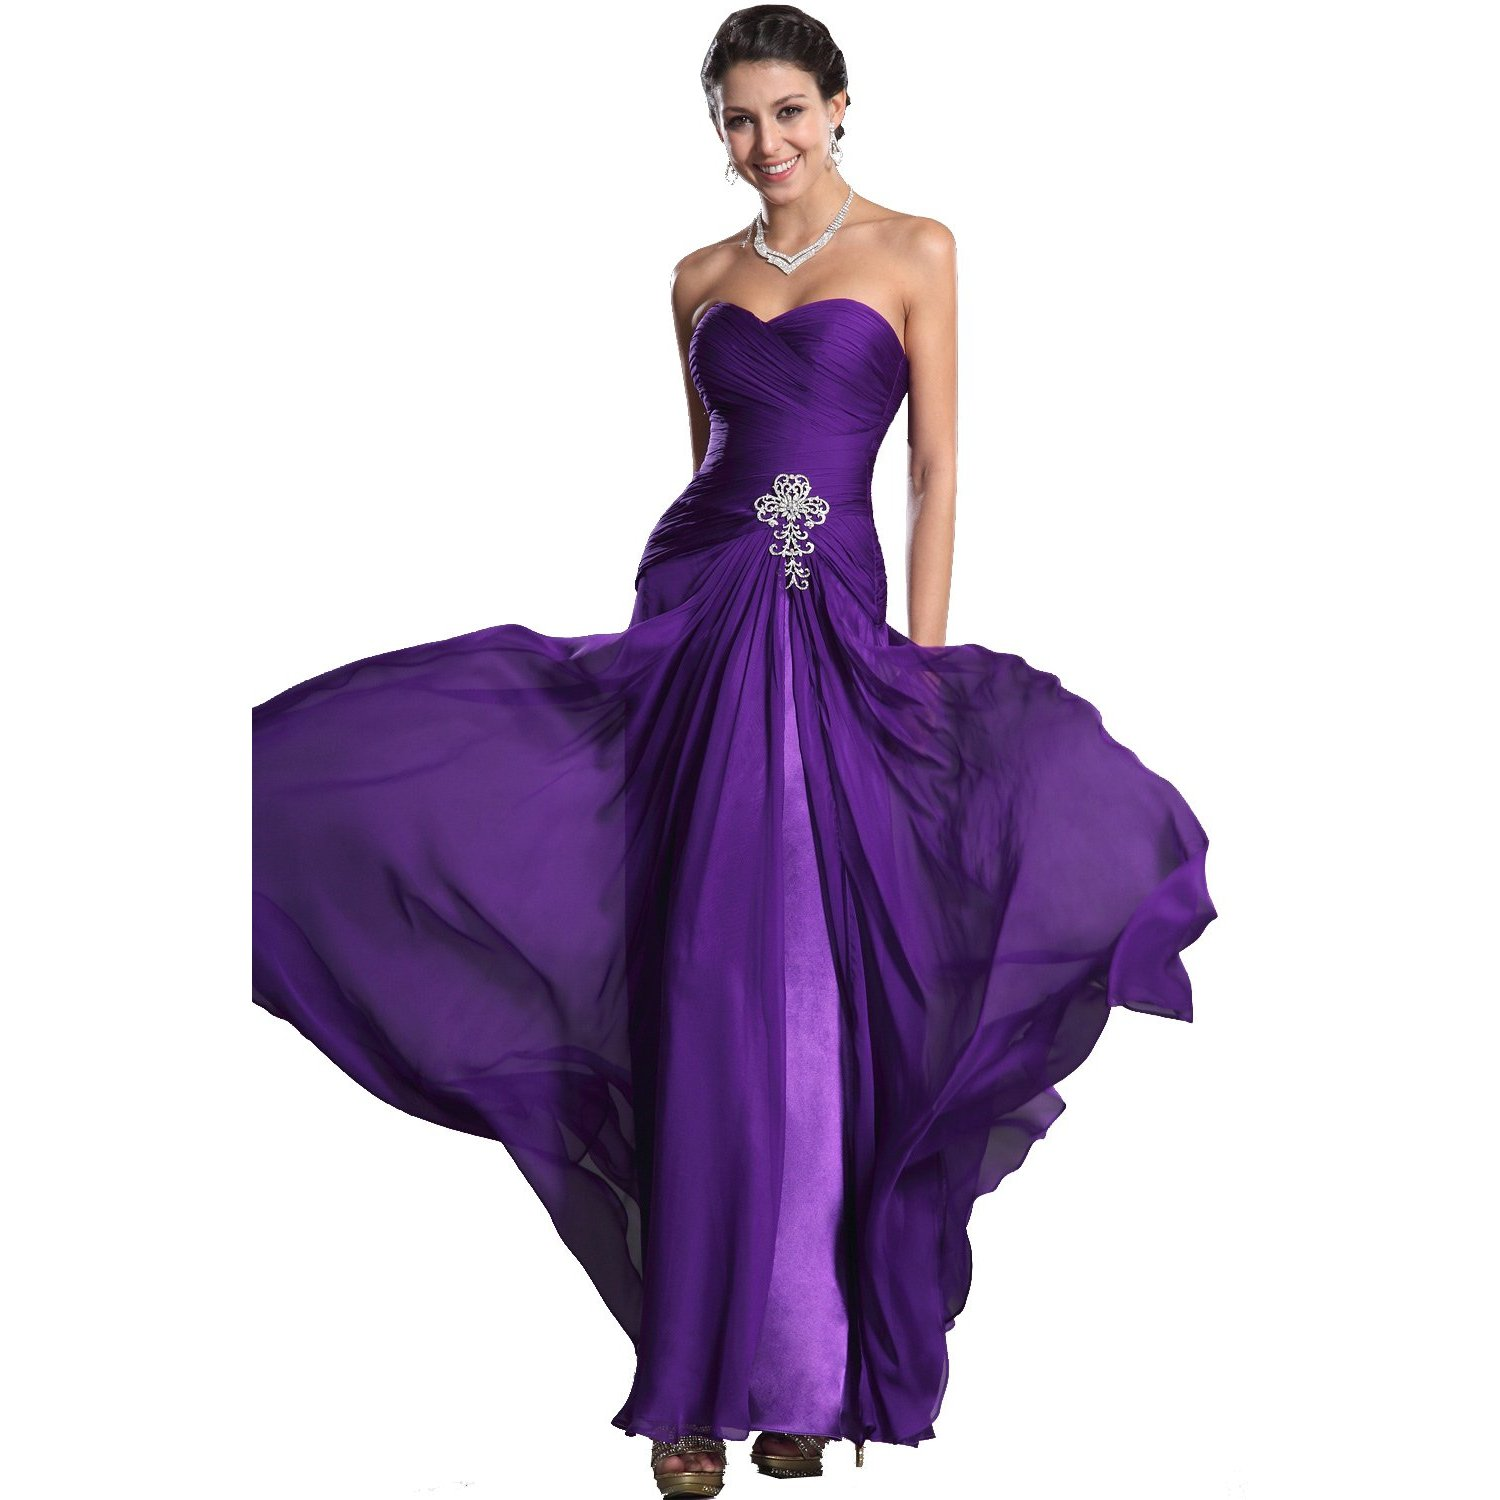 edressit sweetheart bustier robe de soiree mariee ceremonie longue violet robe longue d 39 ete. Black Bedroom Furniture Sets. Home Design Ideas